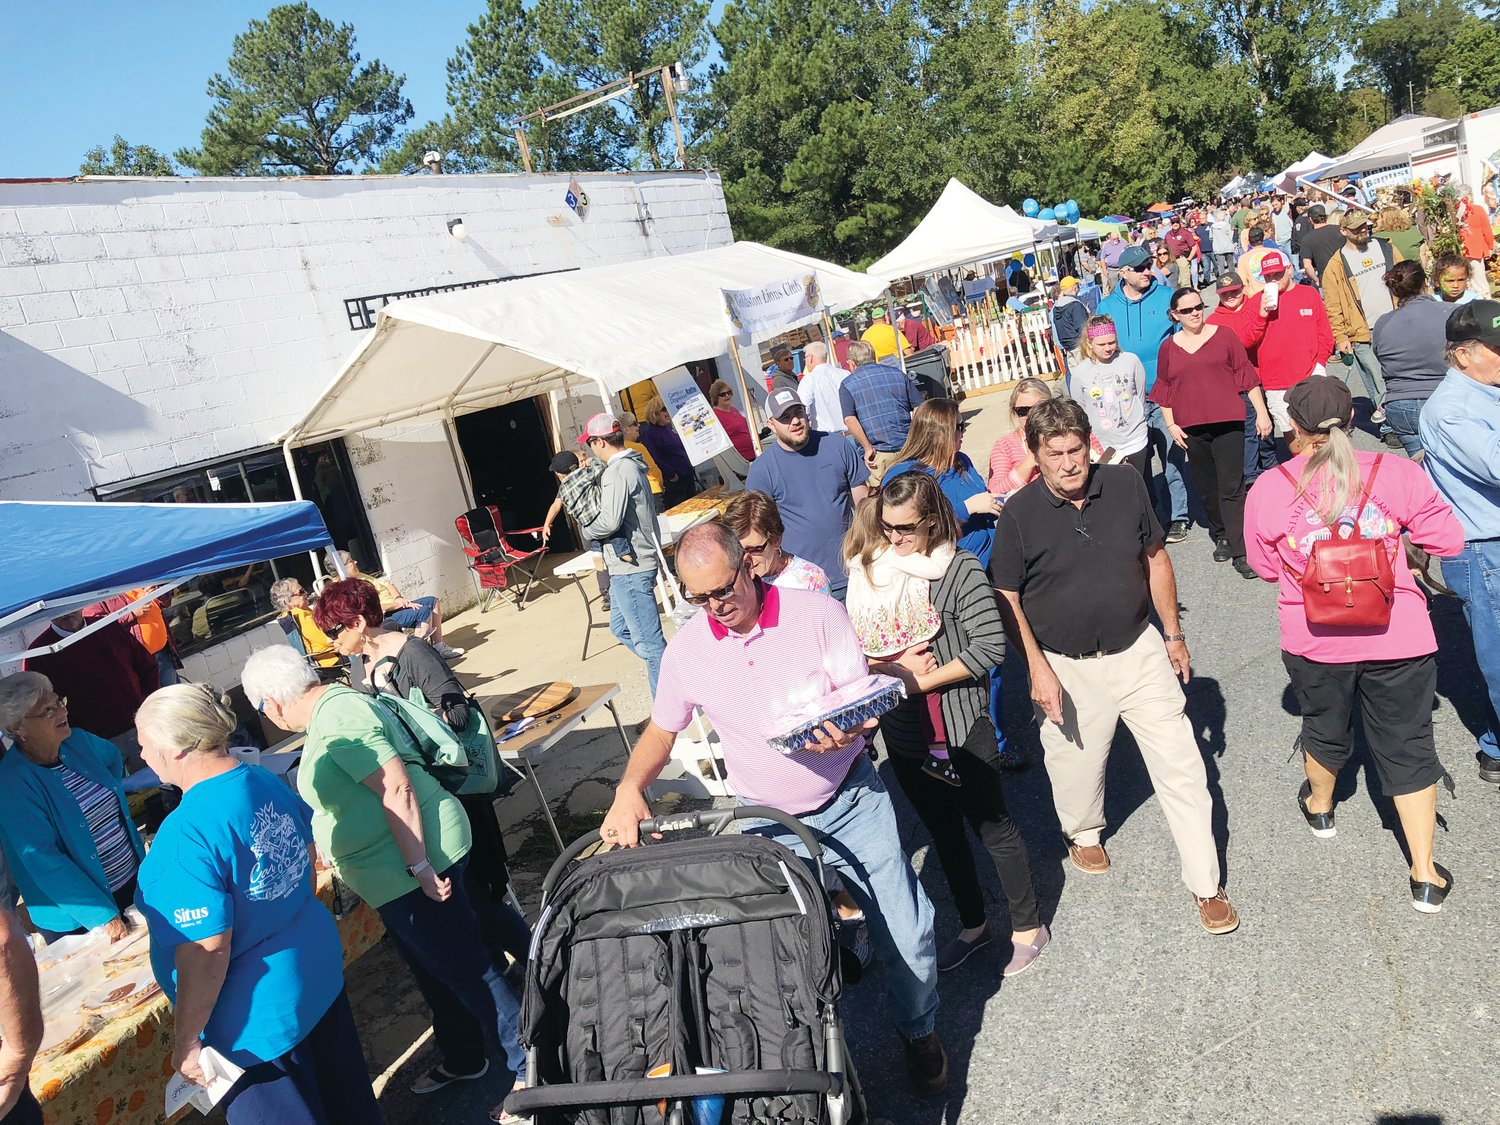 Always a popular event, the  32nd annual Old Fashion Day in Goldston — above is a photo from last year's event — will get underway downtown from 9 a.m. to 4 p.m. on Saturday, October 12.